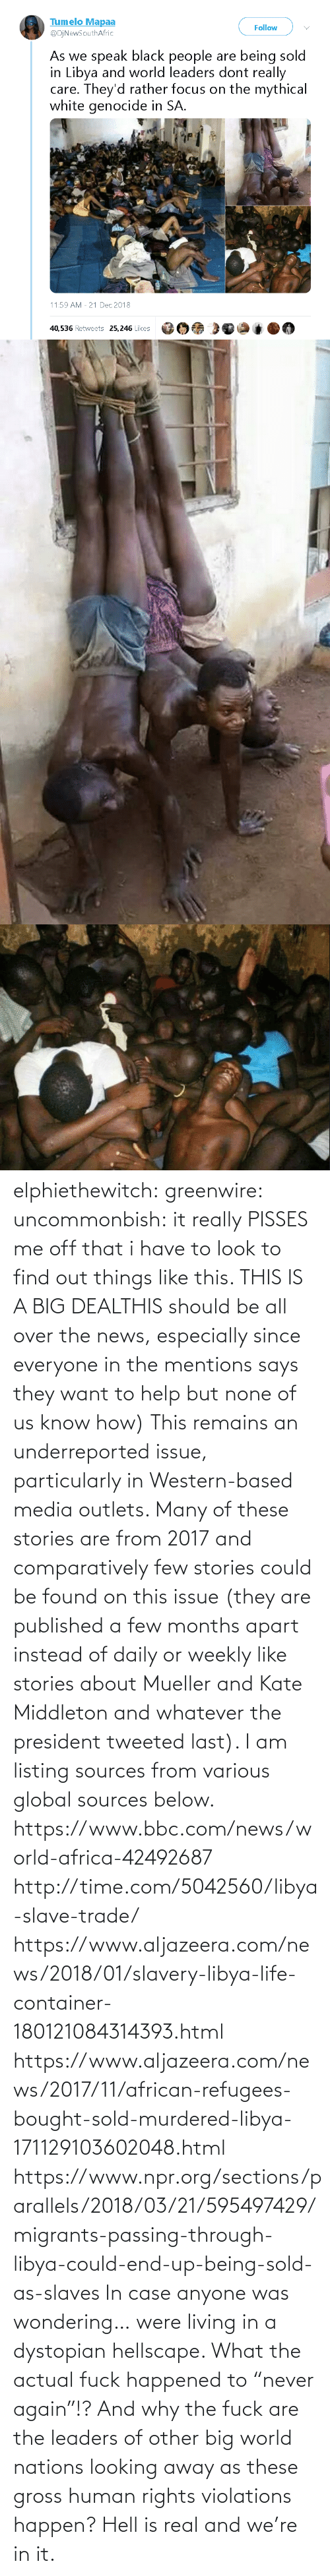 "Life: elphiethewitch: greenwire:  uncommonbish:  it really PISSES me off that i have to look to find out things like this. THIS IS A BIG DEALTHIS should be all over the news, especially since everyone in the mentions says they want to help but none of us know how)  This remains an underreported issue, particularly in Western-based media outlets. Many of these stories are from 2017 and comparatively few stories could be found on this issue (they are published a few months apart instead of daily or weekly like stories about Mueller and Kate Middleton and whatever the president tweeted last). I am listing sources from various global sources below.  https://www.bbc.com/news/world-africa-42492687 http://time.com/5042560/libya-slave-trade/ https://www.aljazeera.com/news/2018/01/slavery-libya-life-container-180121084314393.html https://www.aljazeera.com/news/2017/11/african-refugees-bought-sold-murdered-libya-171129103602048.html https://www.npr.org/sections/parallels/2018/03/21/595497429/migrants-passing-through-libya-could-end-up-being-sold-as-slaves   In case anyone was wondering… were living in a dystopian hellscape.  What the actual fuck happened to ""never again""!? And why the fuck are the leaders of other big world nations looking away as these gross human rights violations happen?  Hell is real and we're in it."